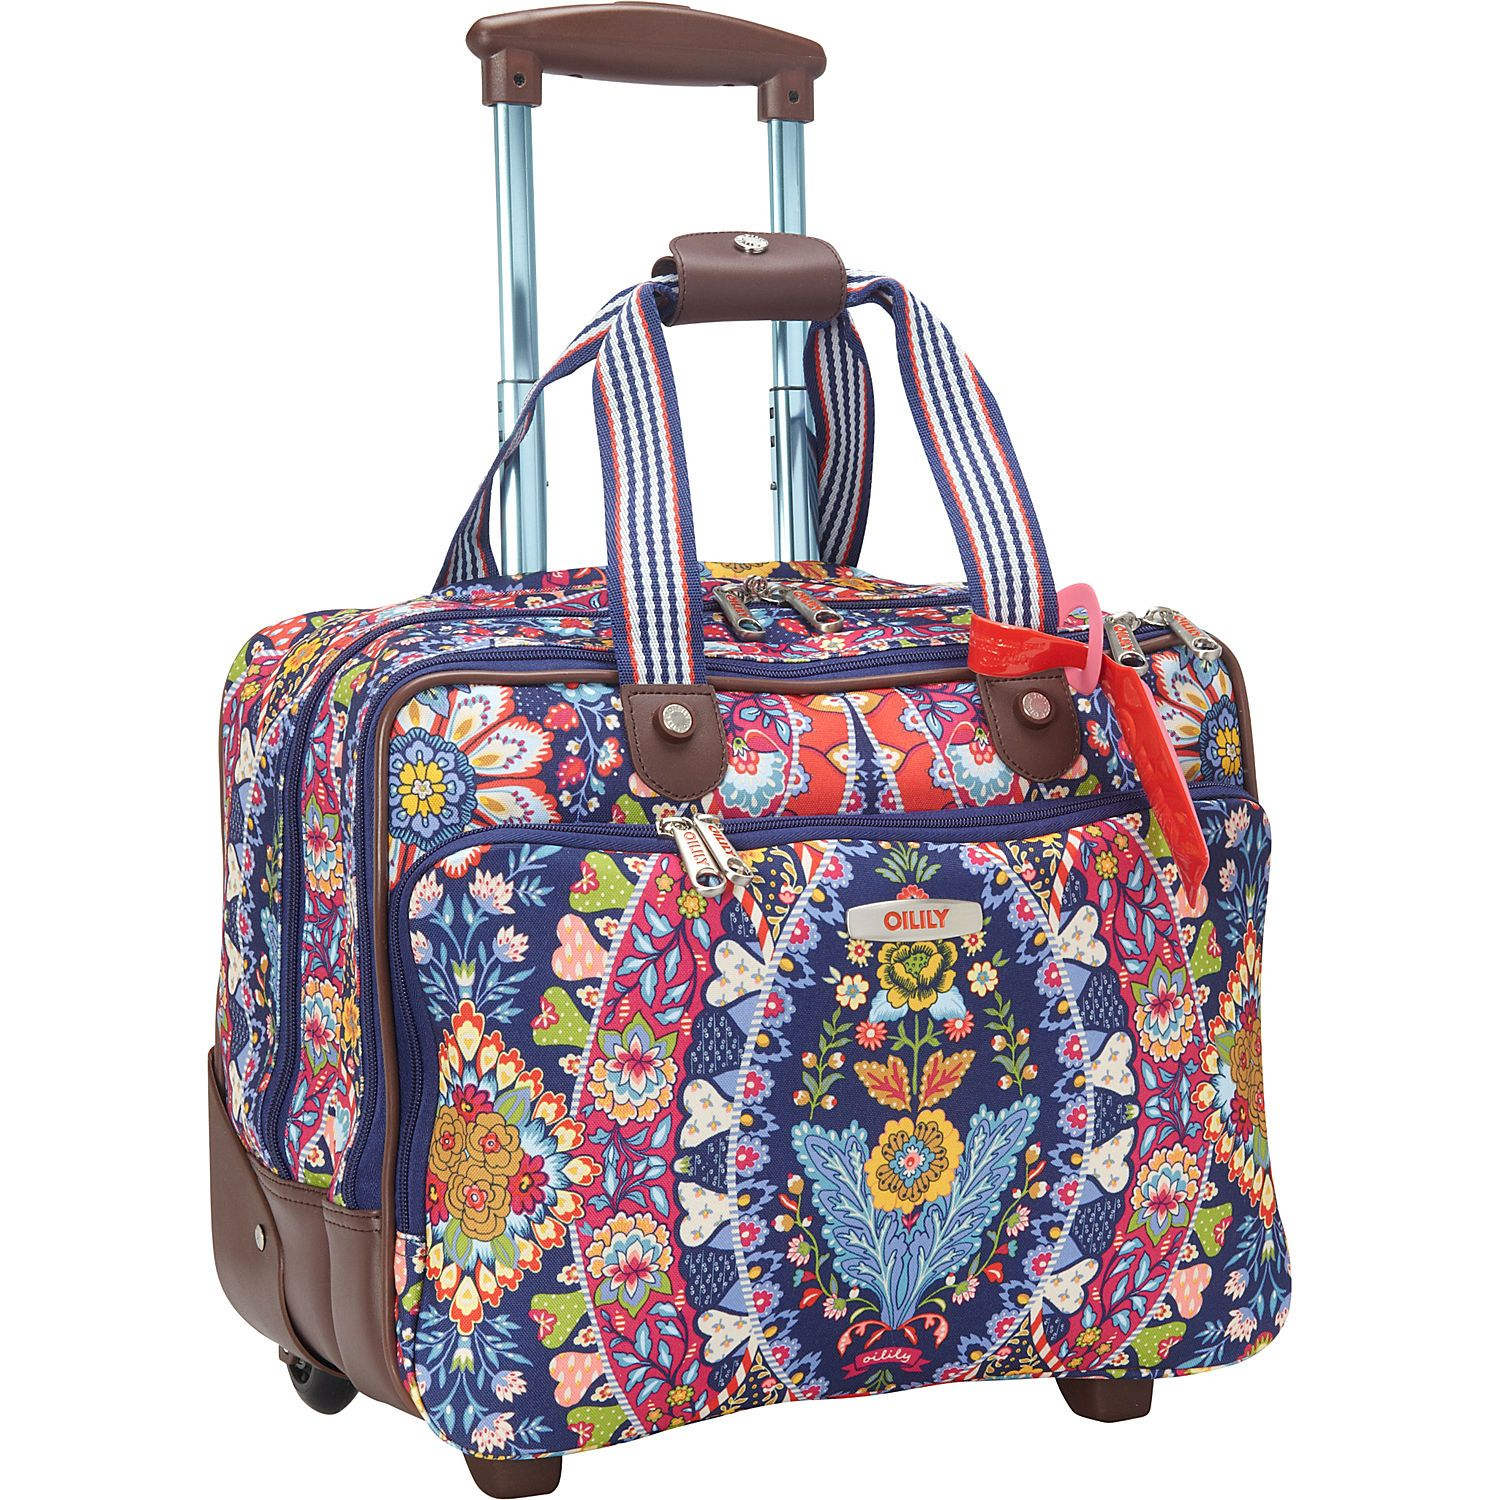 Oilily Travel Office Bag On Wheels - eBags.com | gotcha * go awaY ...